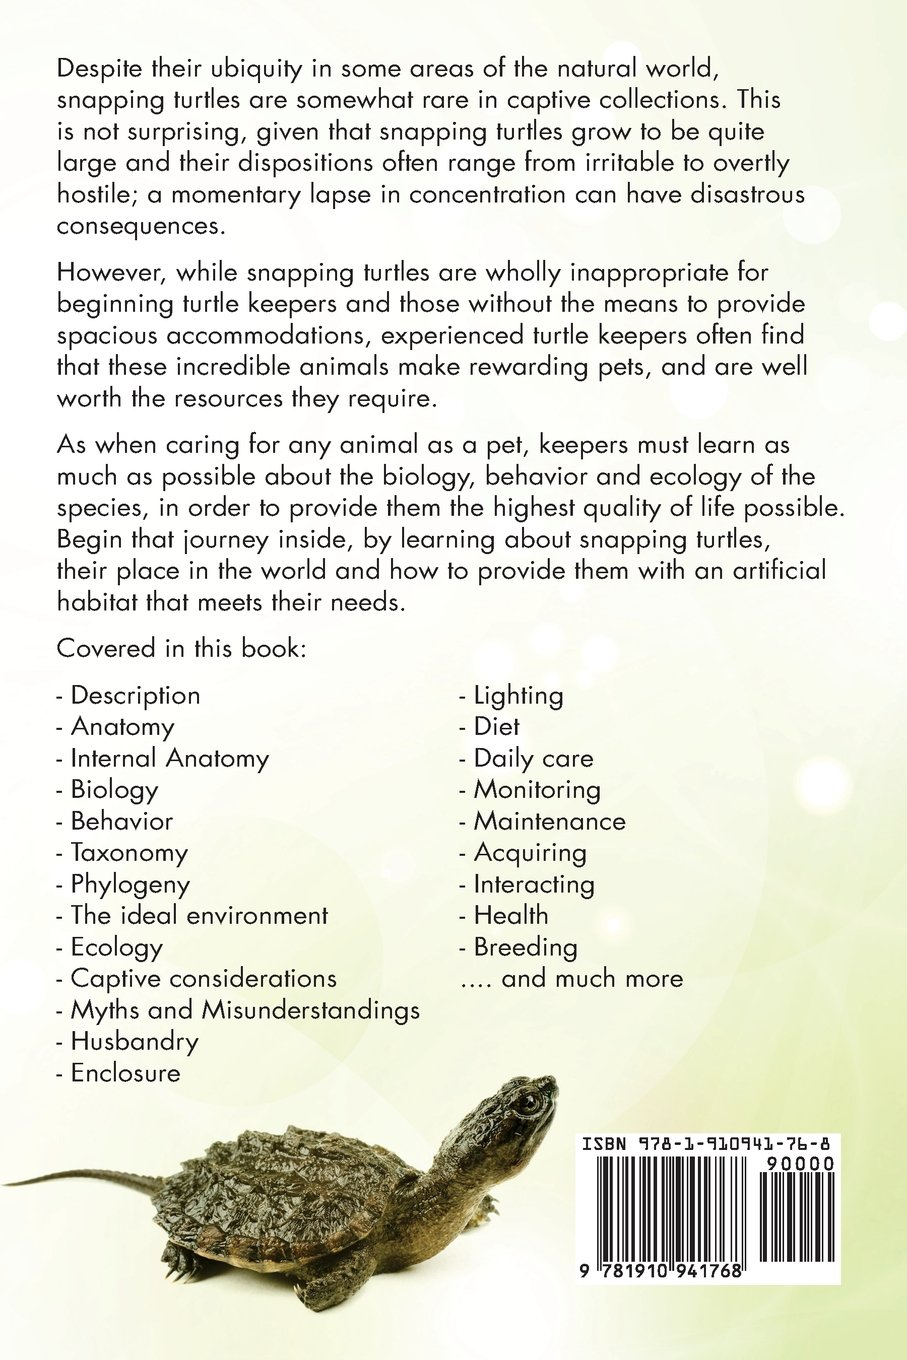 Snapping Turtle Pet Owners Guide. The Captive Care of Snapping ...